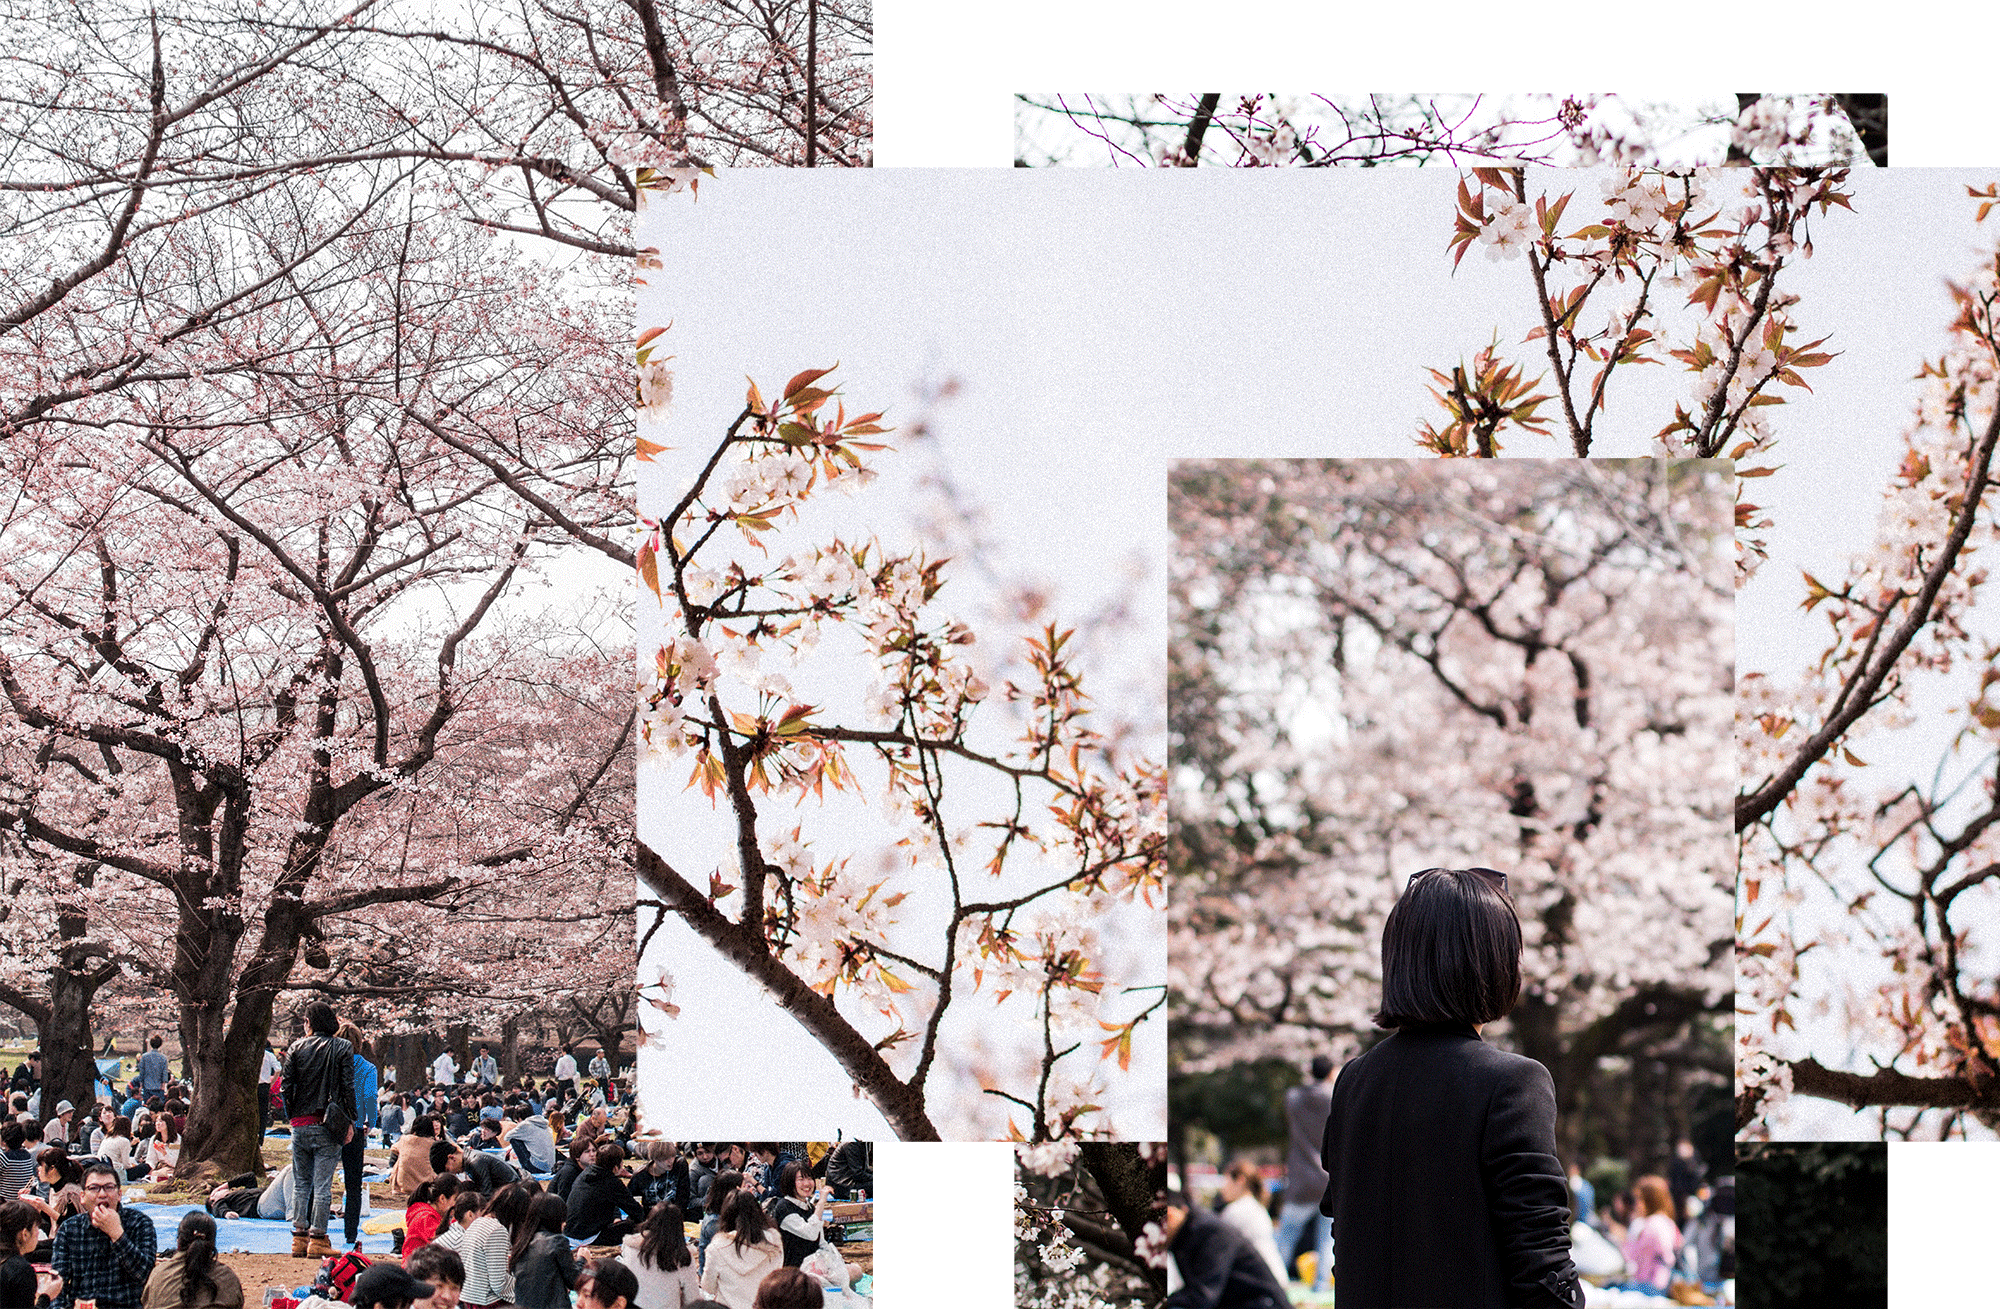 Hanami at Yoyogi Park / Sakura Season Travle Guide to Tokyo - Traveldiary & Guides by IheartAlice.com